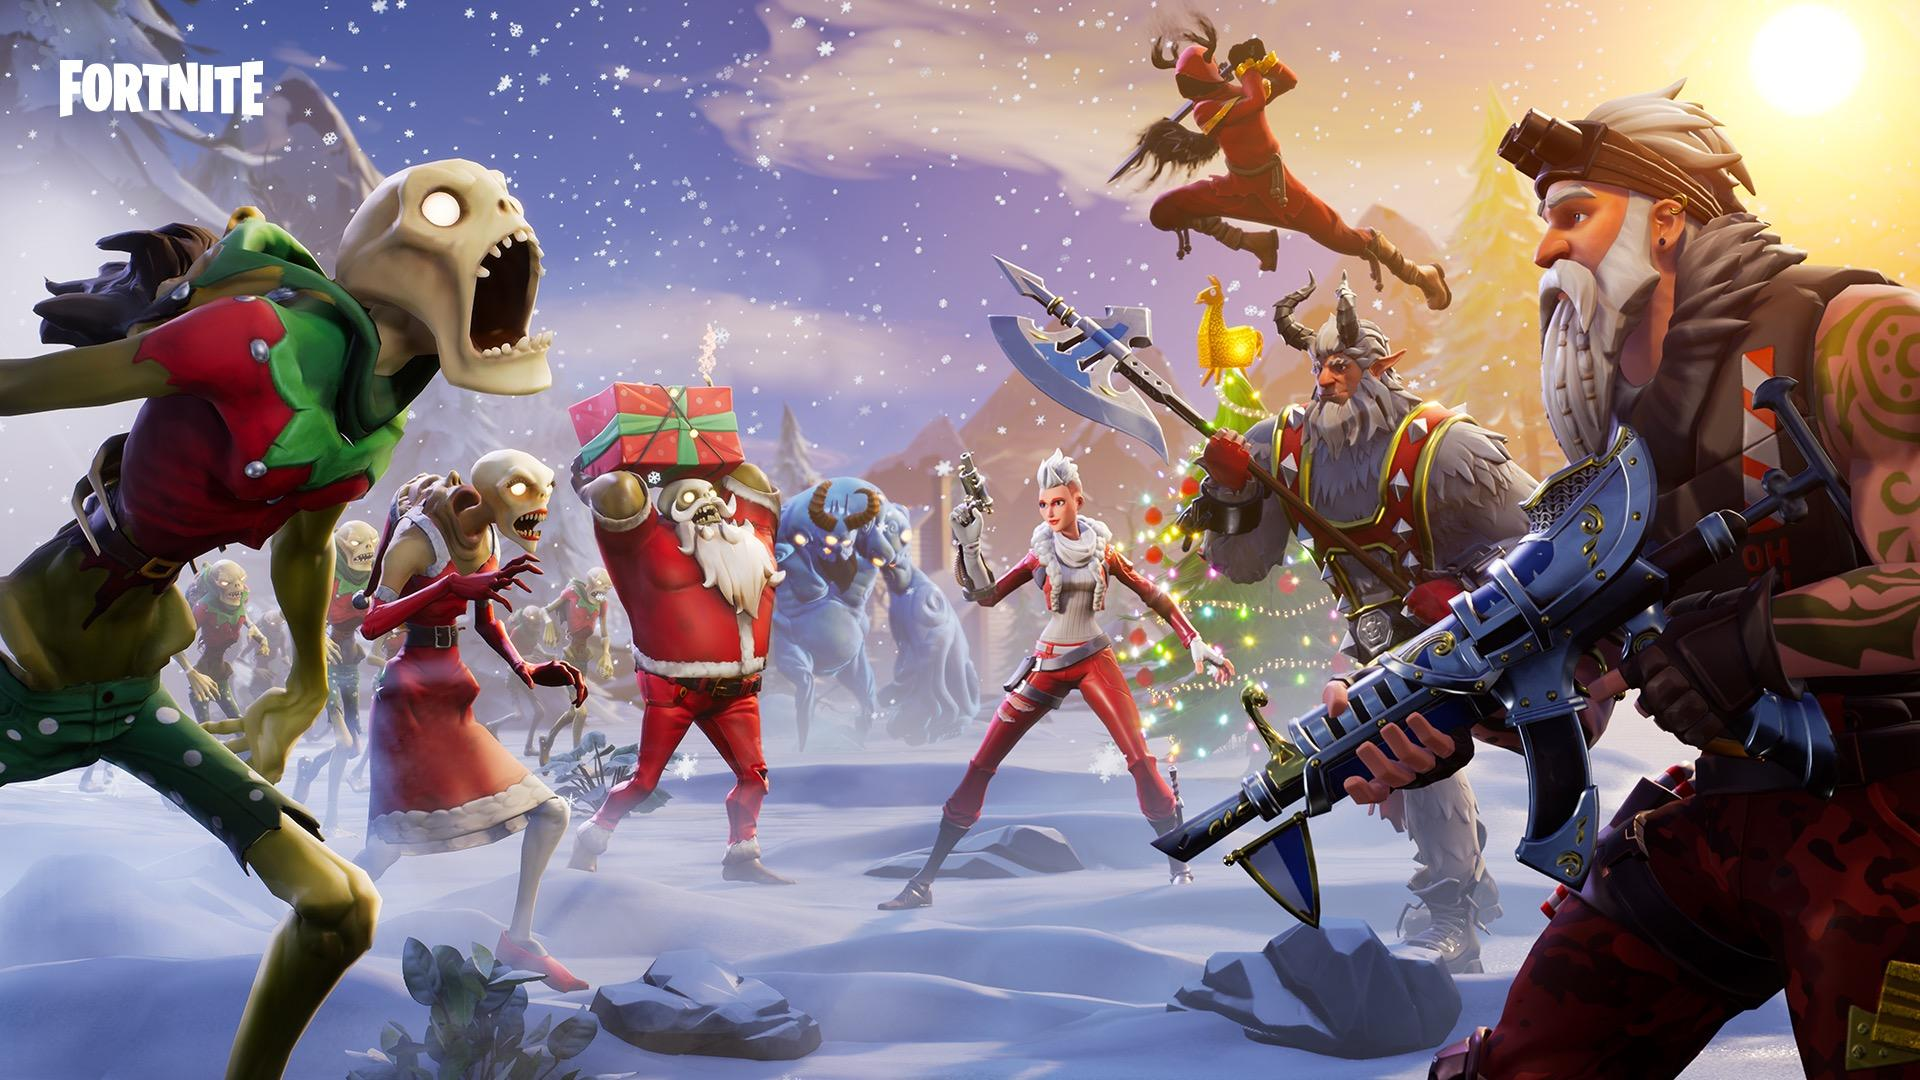 Days of Fortnite Event Added in Fortnite Patch 7.10